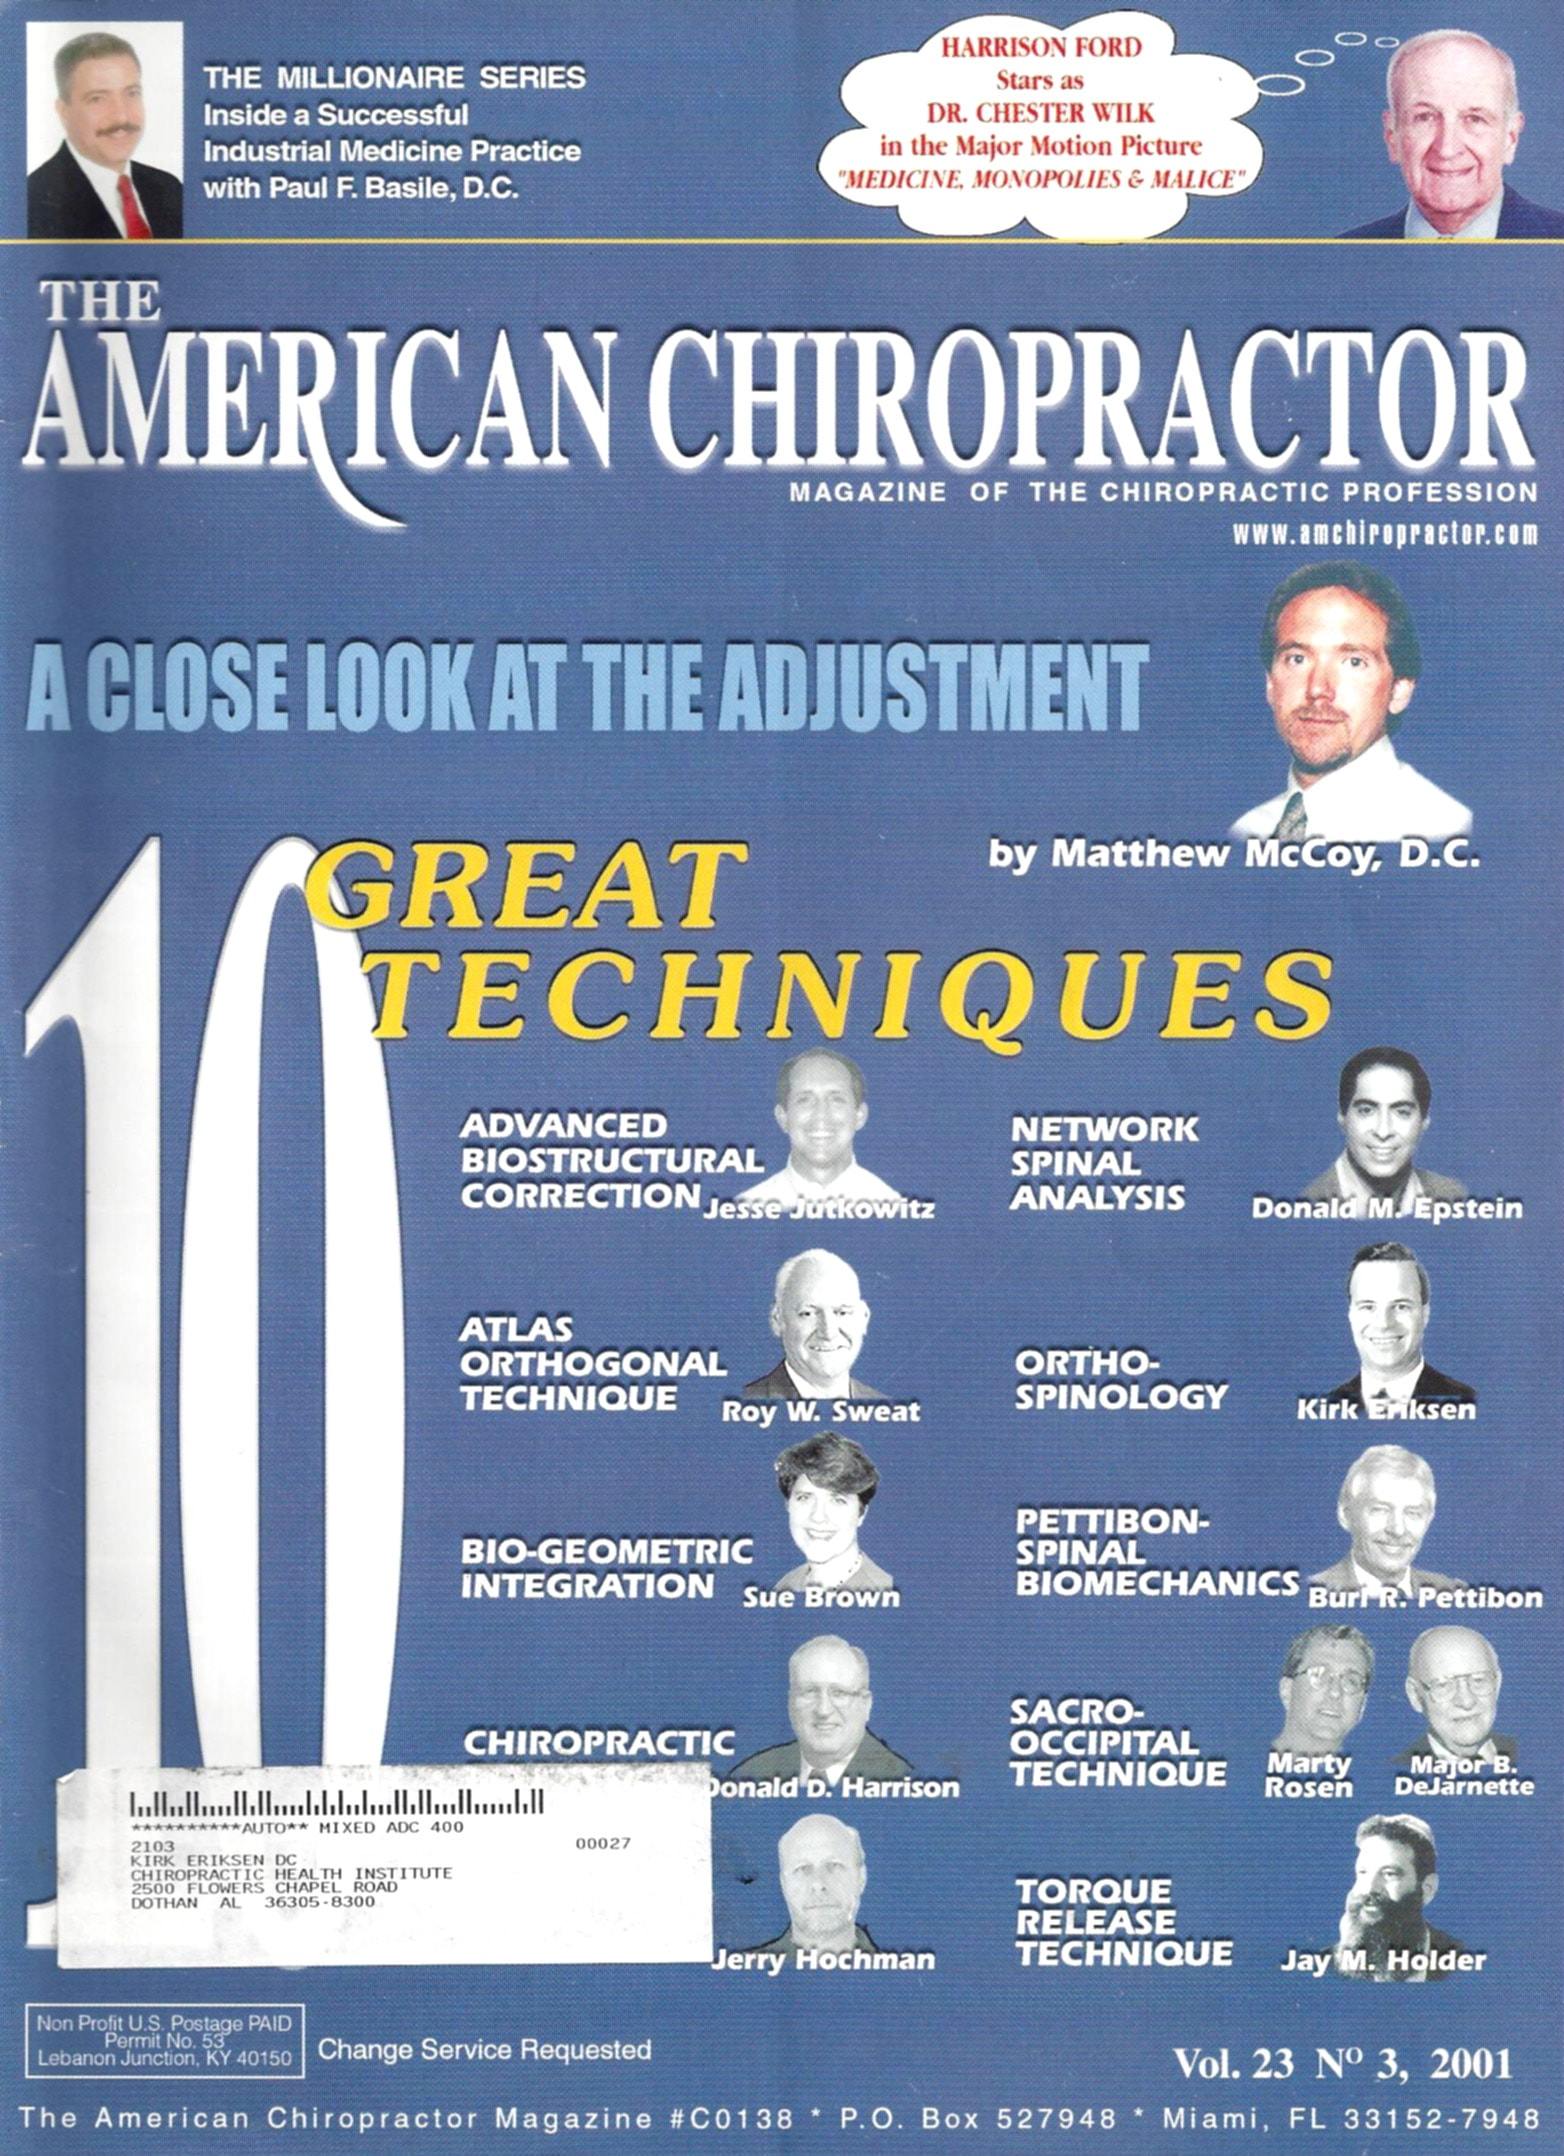 The American Chiropractor Volume 23 Number 3 2001